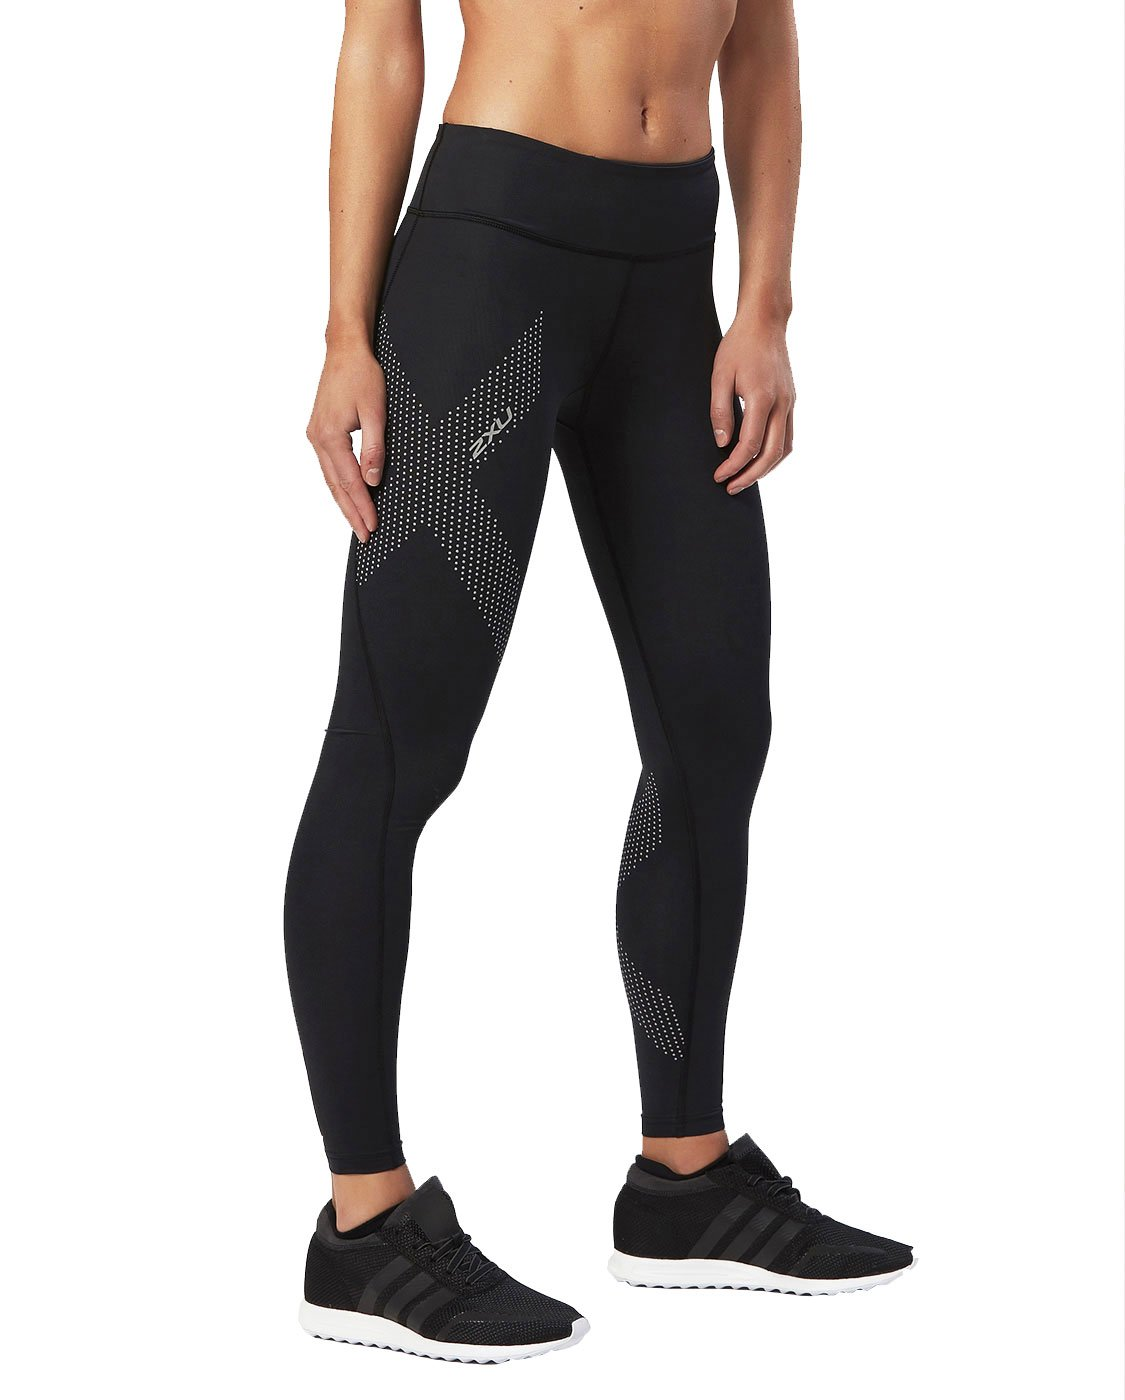 2XU Women's Mid-Rise Compression Tights, Black/Dotted Reflective Logo, Large/Tall by 2XU